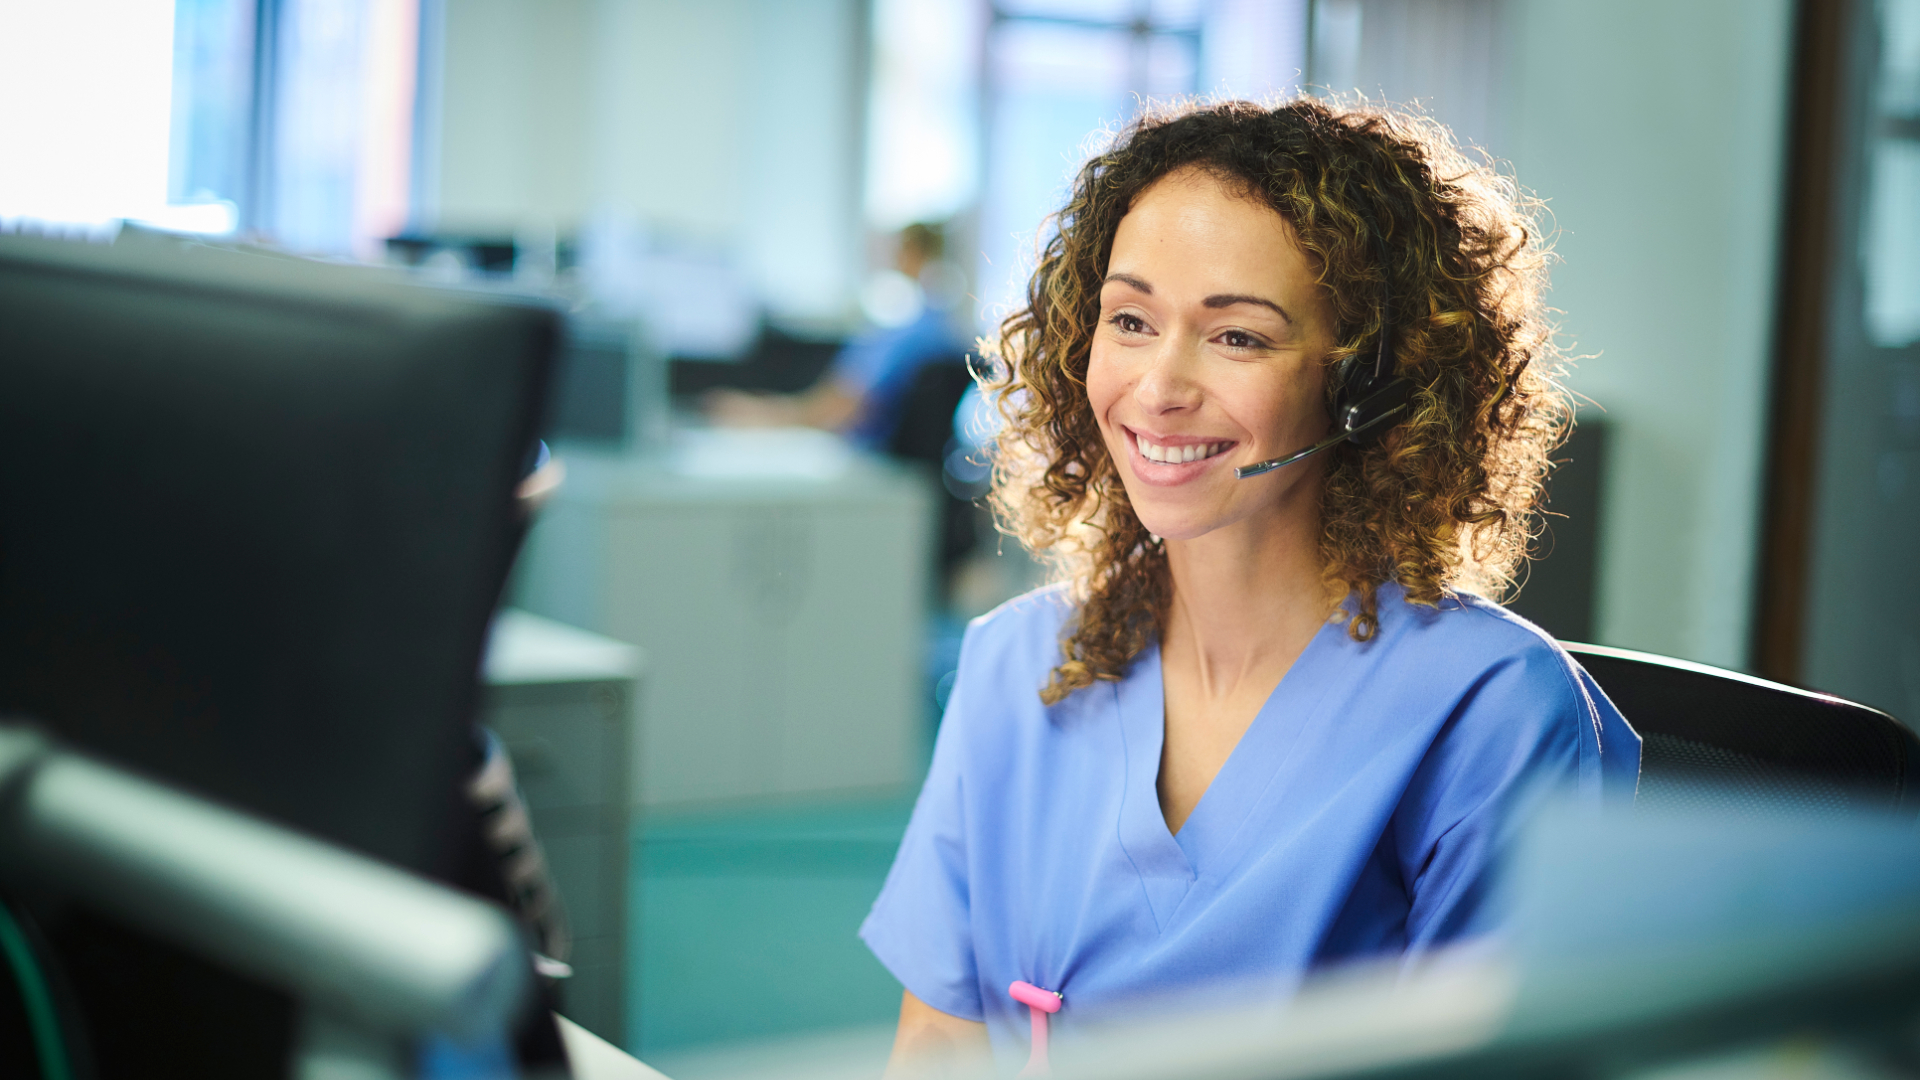 Atrium Health's virtual critical care (VCC) model uses real-time, two-way audio and high-definition video communication to hundreds of critical care beds and via mobile carts in two emergency departments in the health system.